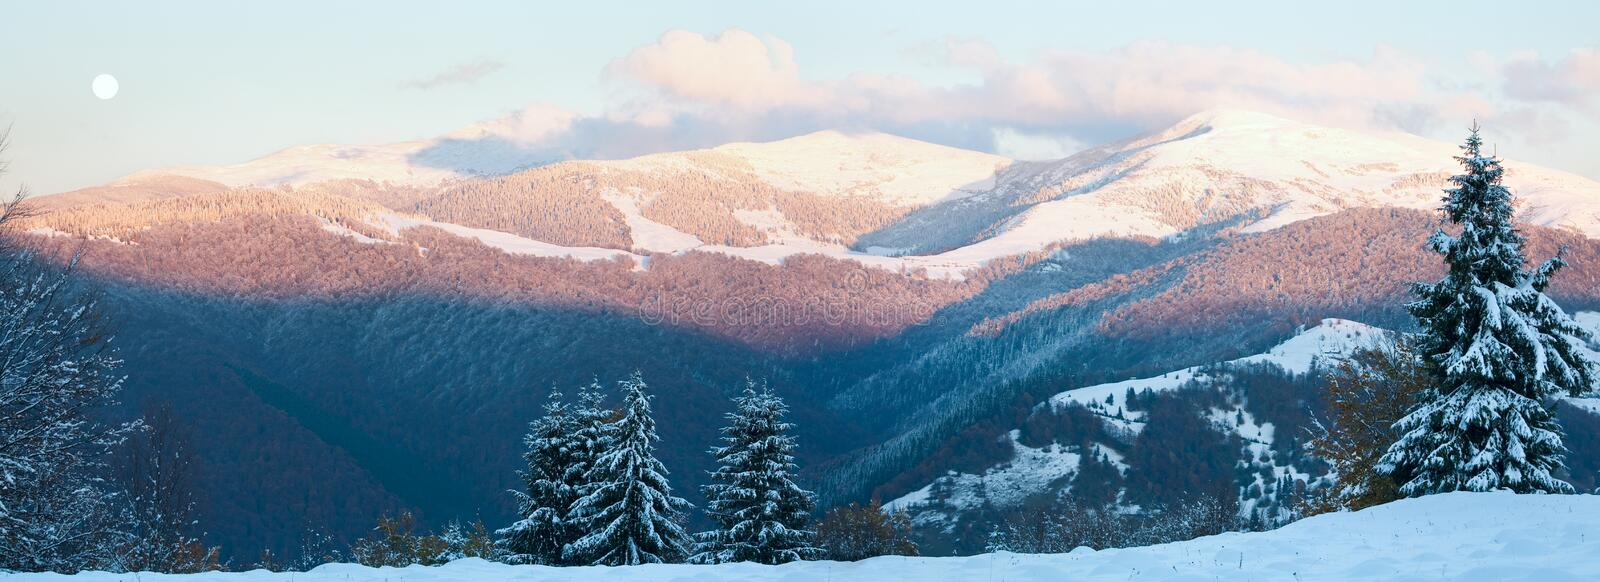 October mountain panorama with first winter snow stock image